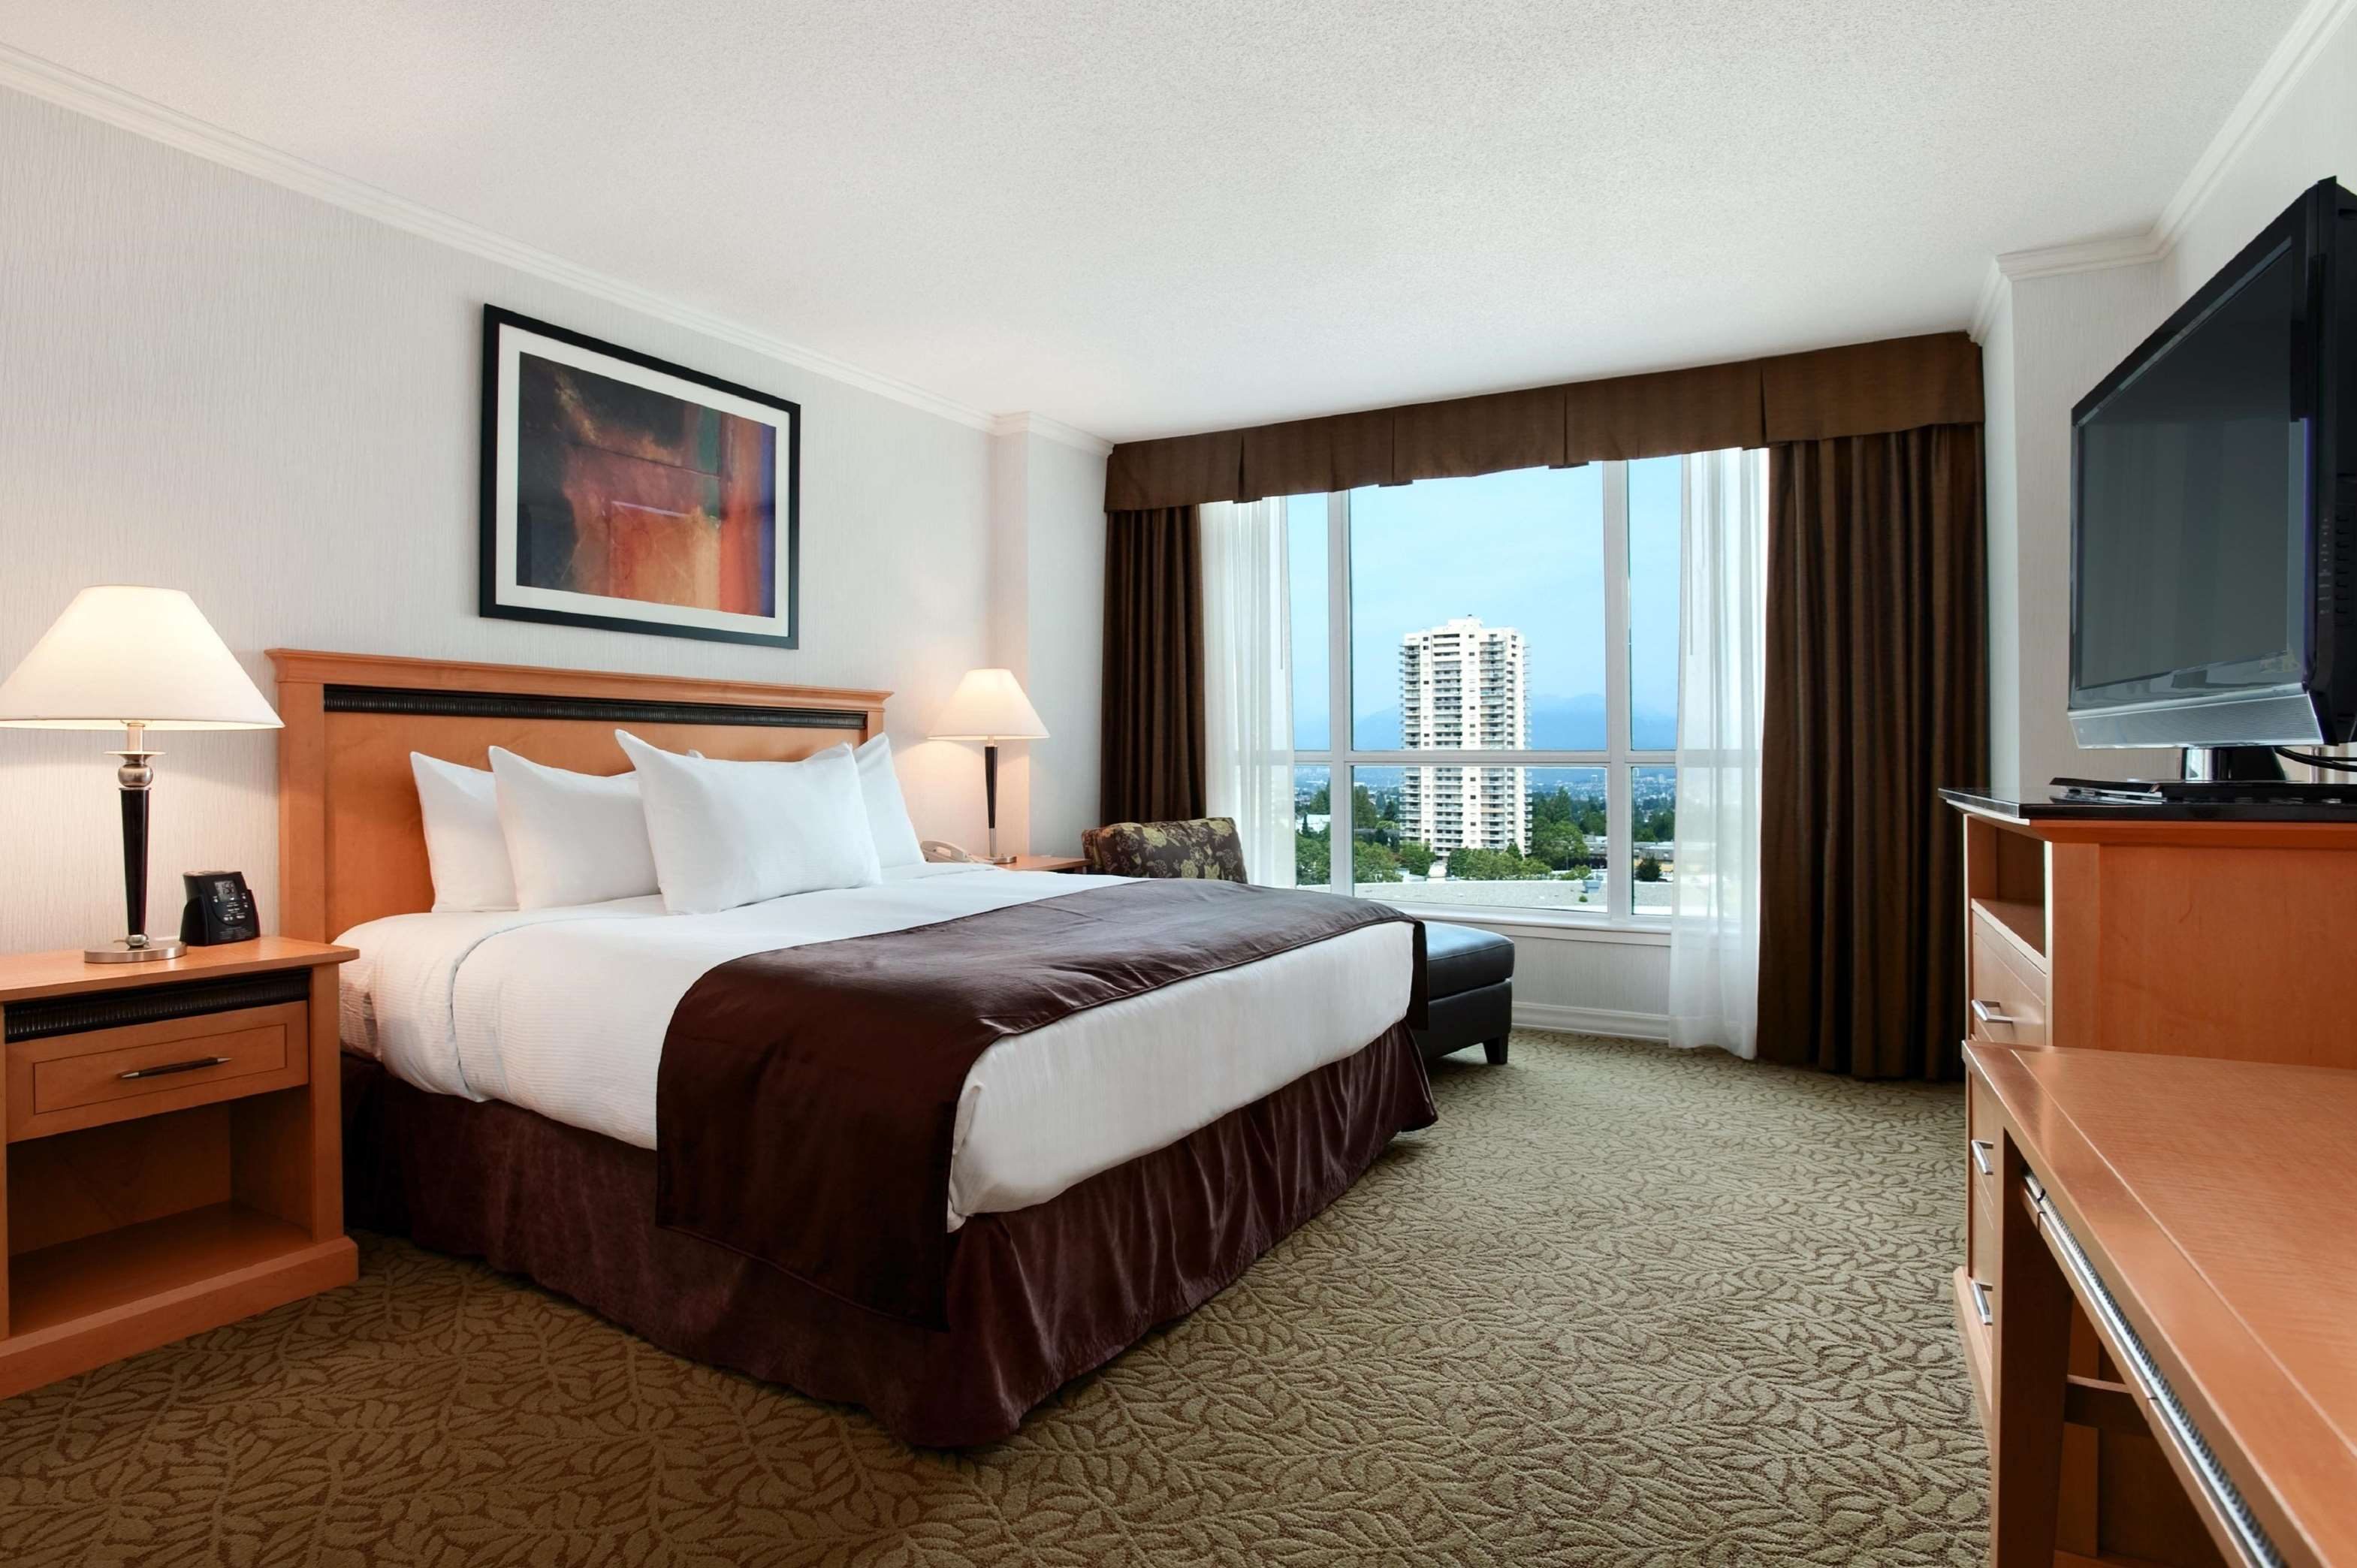 Hilton Vancouver Metrotown in Burnaby: 1 King Bed Deluxe Room with View